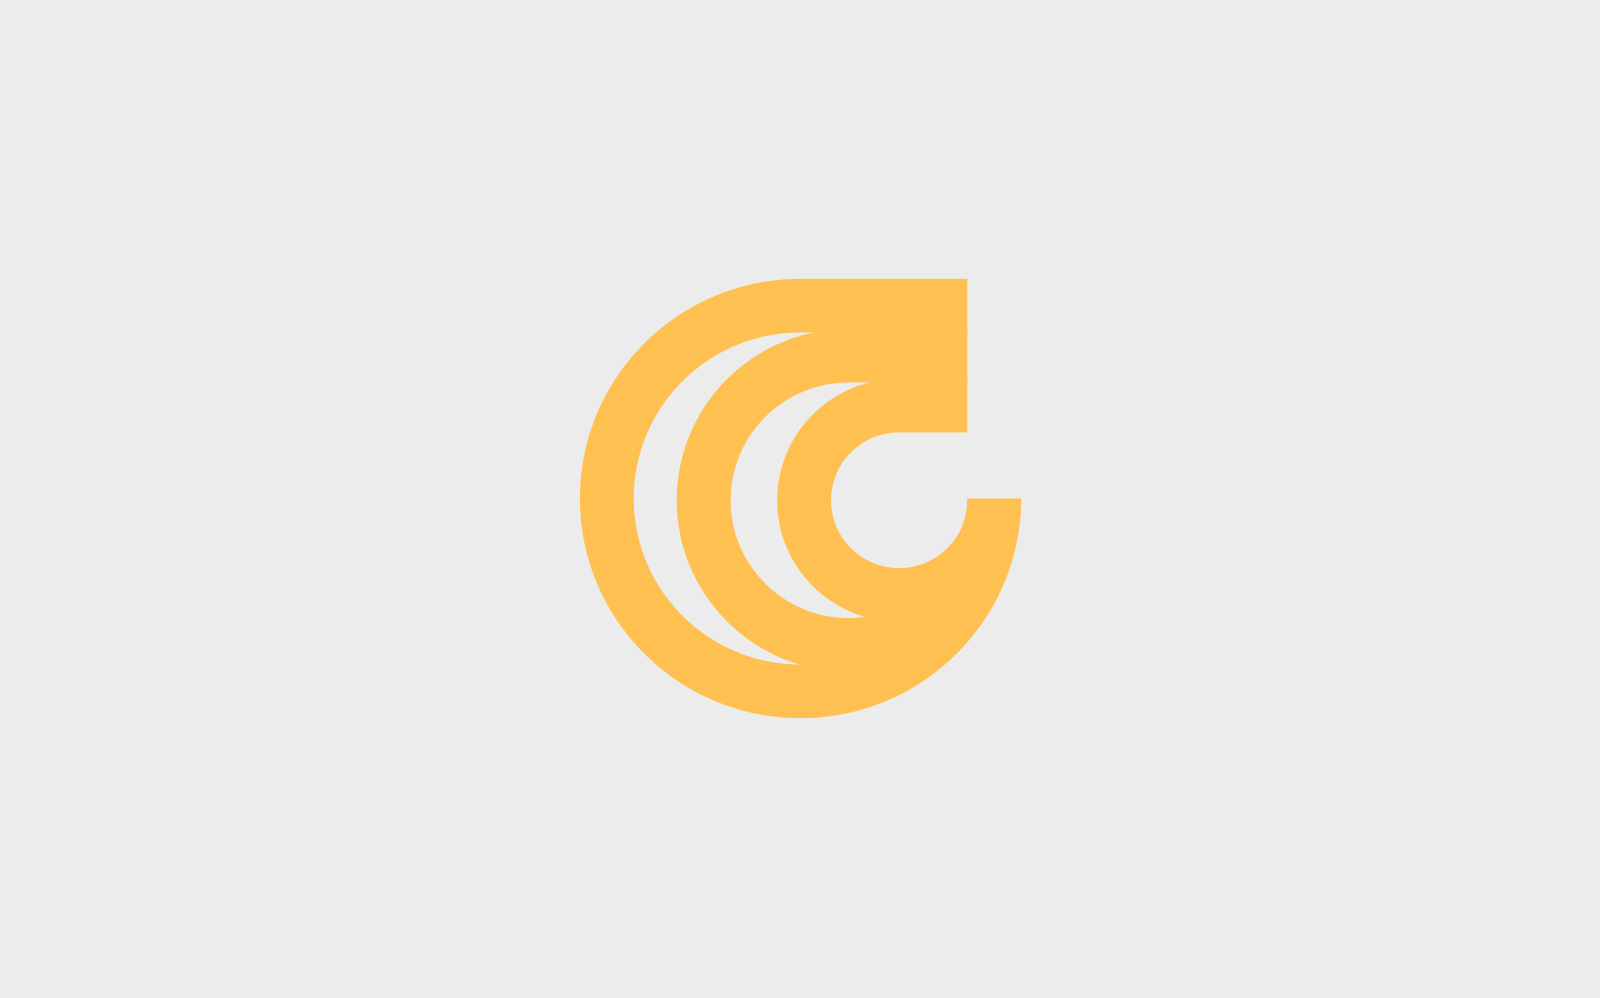 CCCX small business logo design